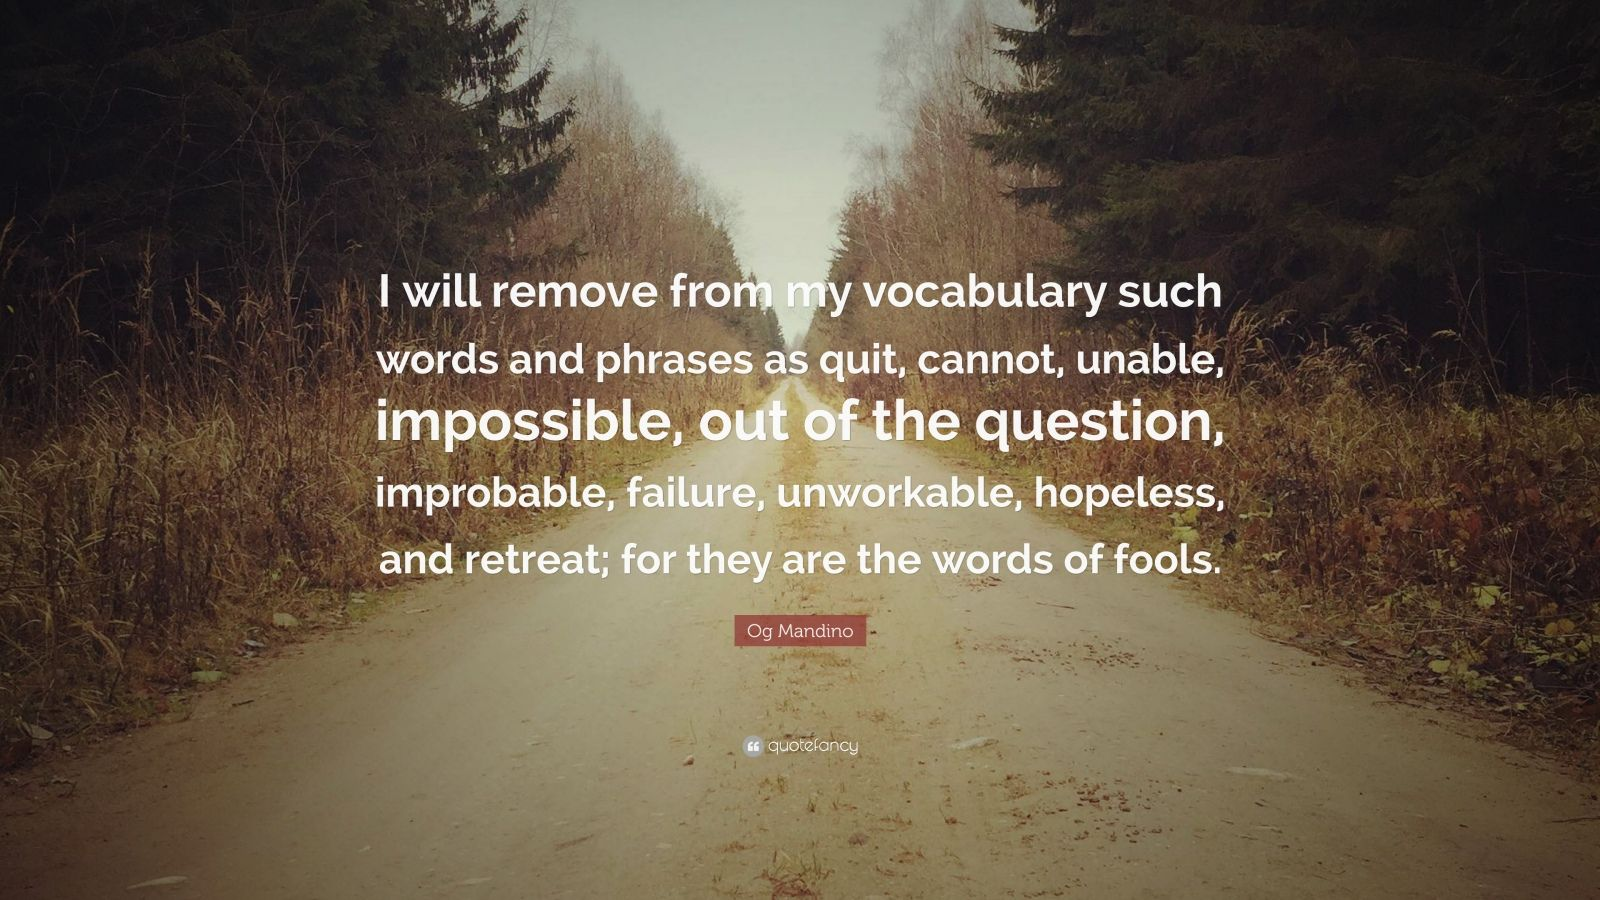 "Og Mandino Quote: ""I will remove from my vocabulary such words and phrases as quit, cannot, unable, impossible, out of the question, improbable, failure, unworkable, hopeless, and retreat; for they are the words of fools."""